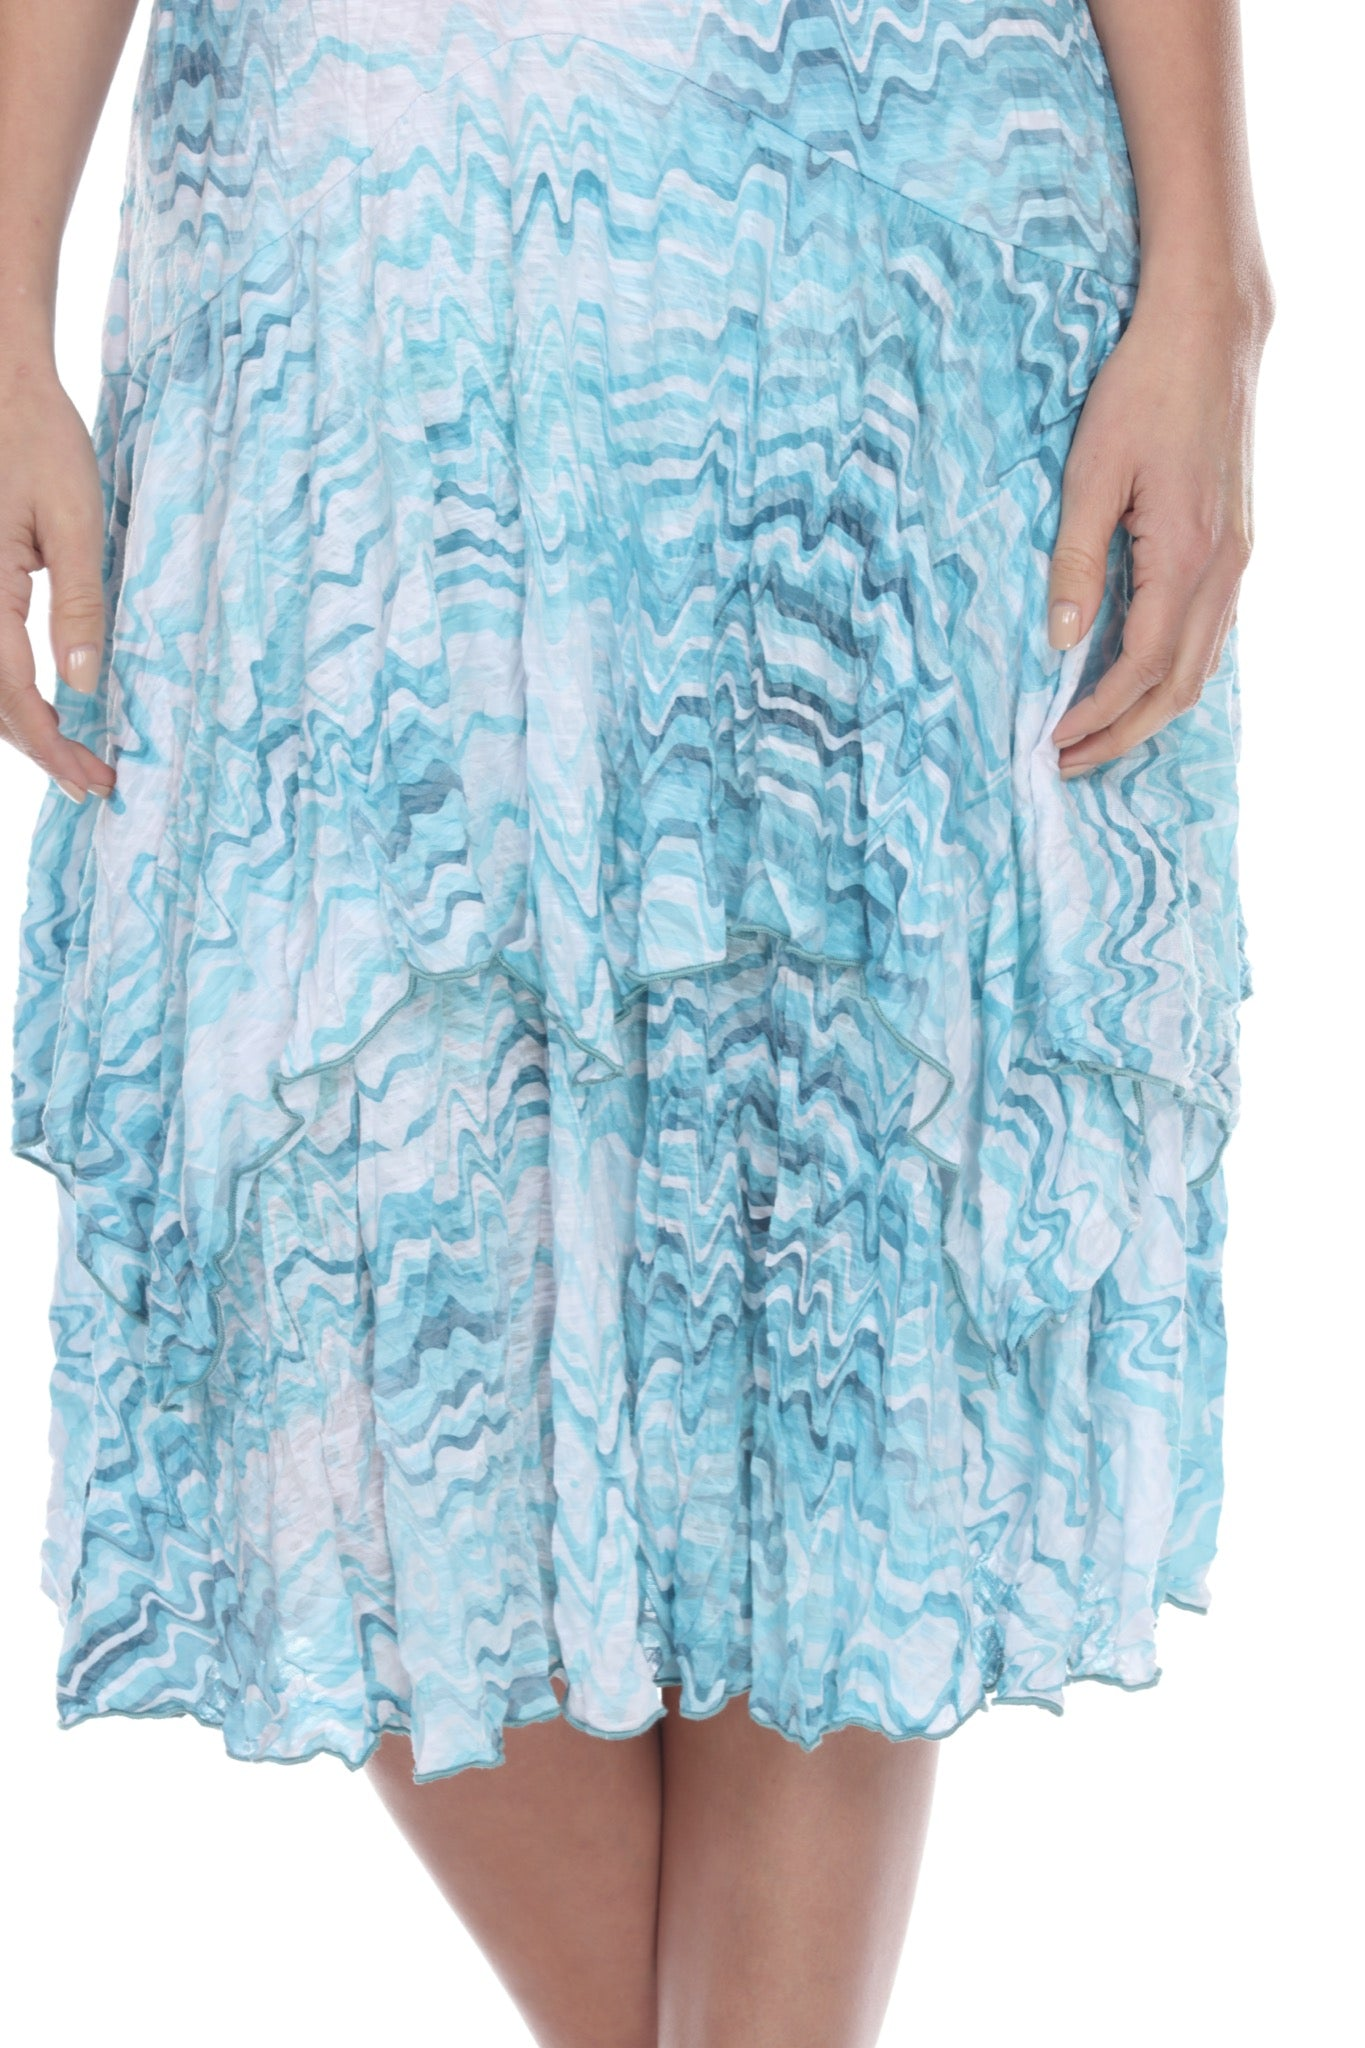 Paige Dress - Aqua Waves - CARINE